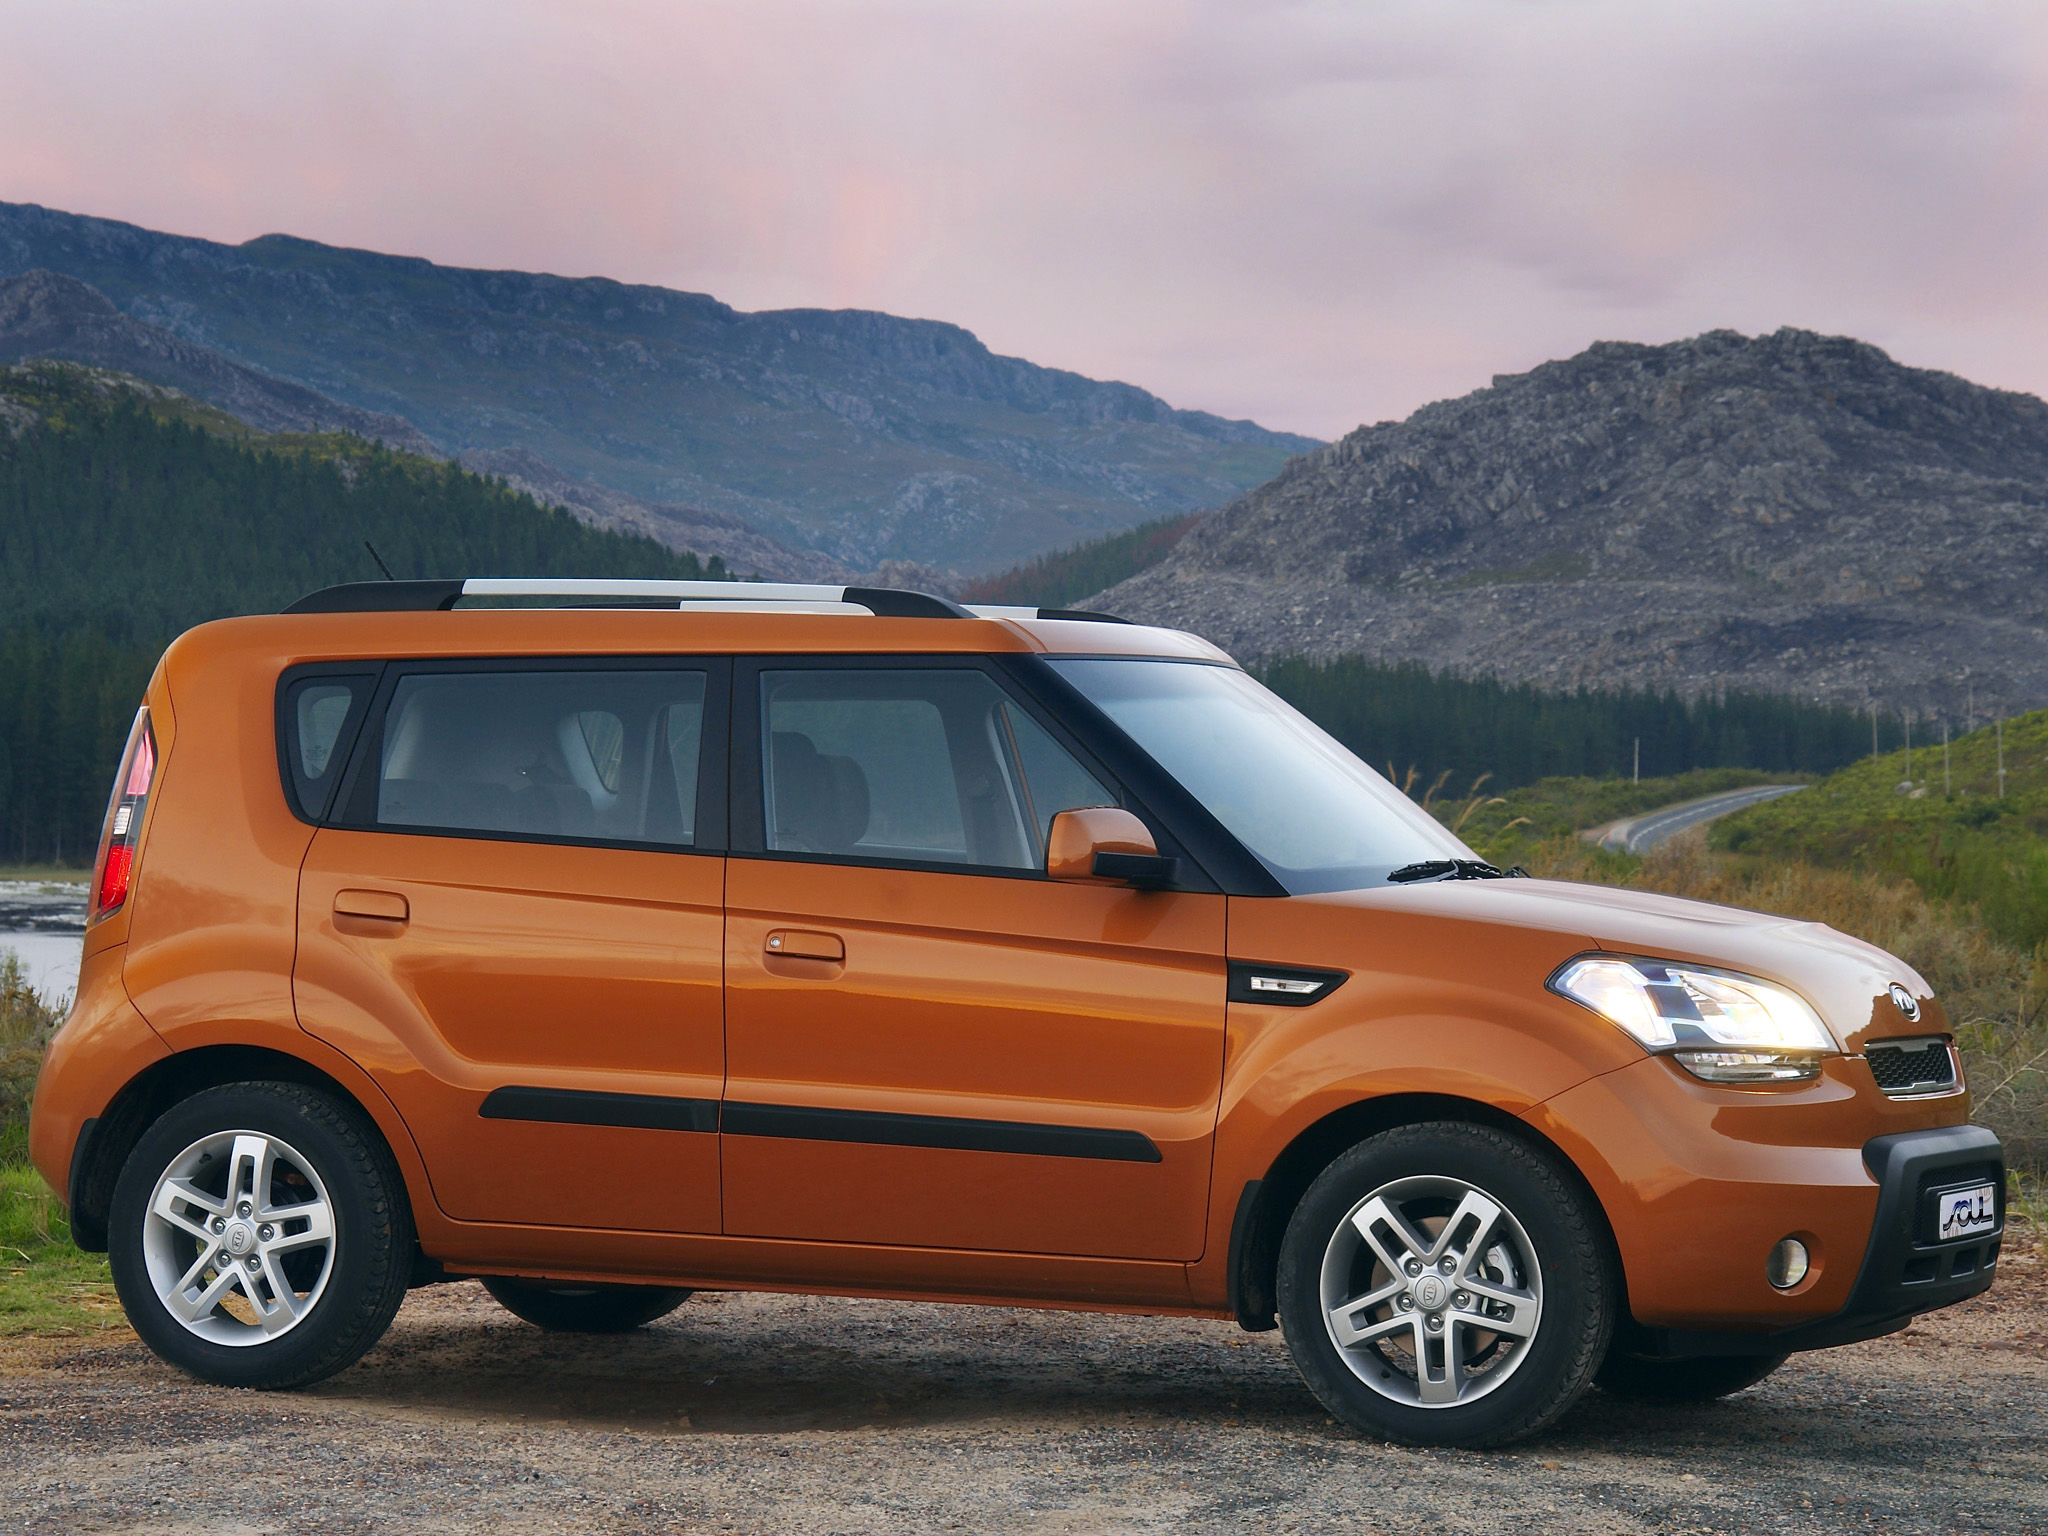 kia soul photos photo gallery page 2 cars pictures. Black Bedroom Furniture Sets. Home Design Ideas